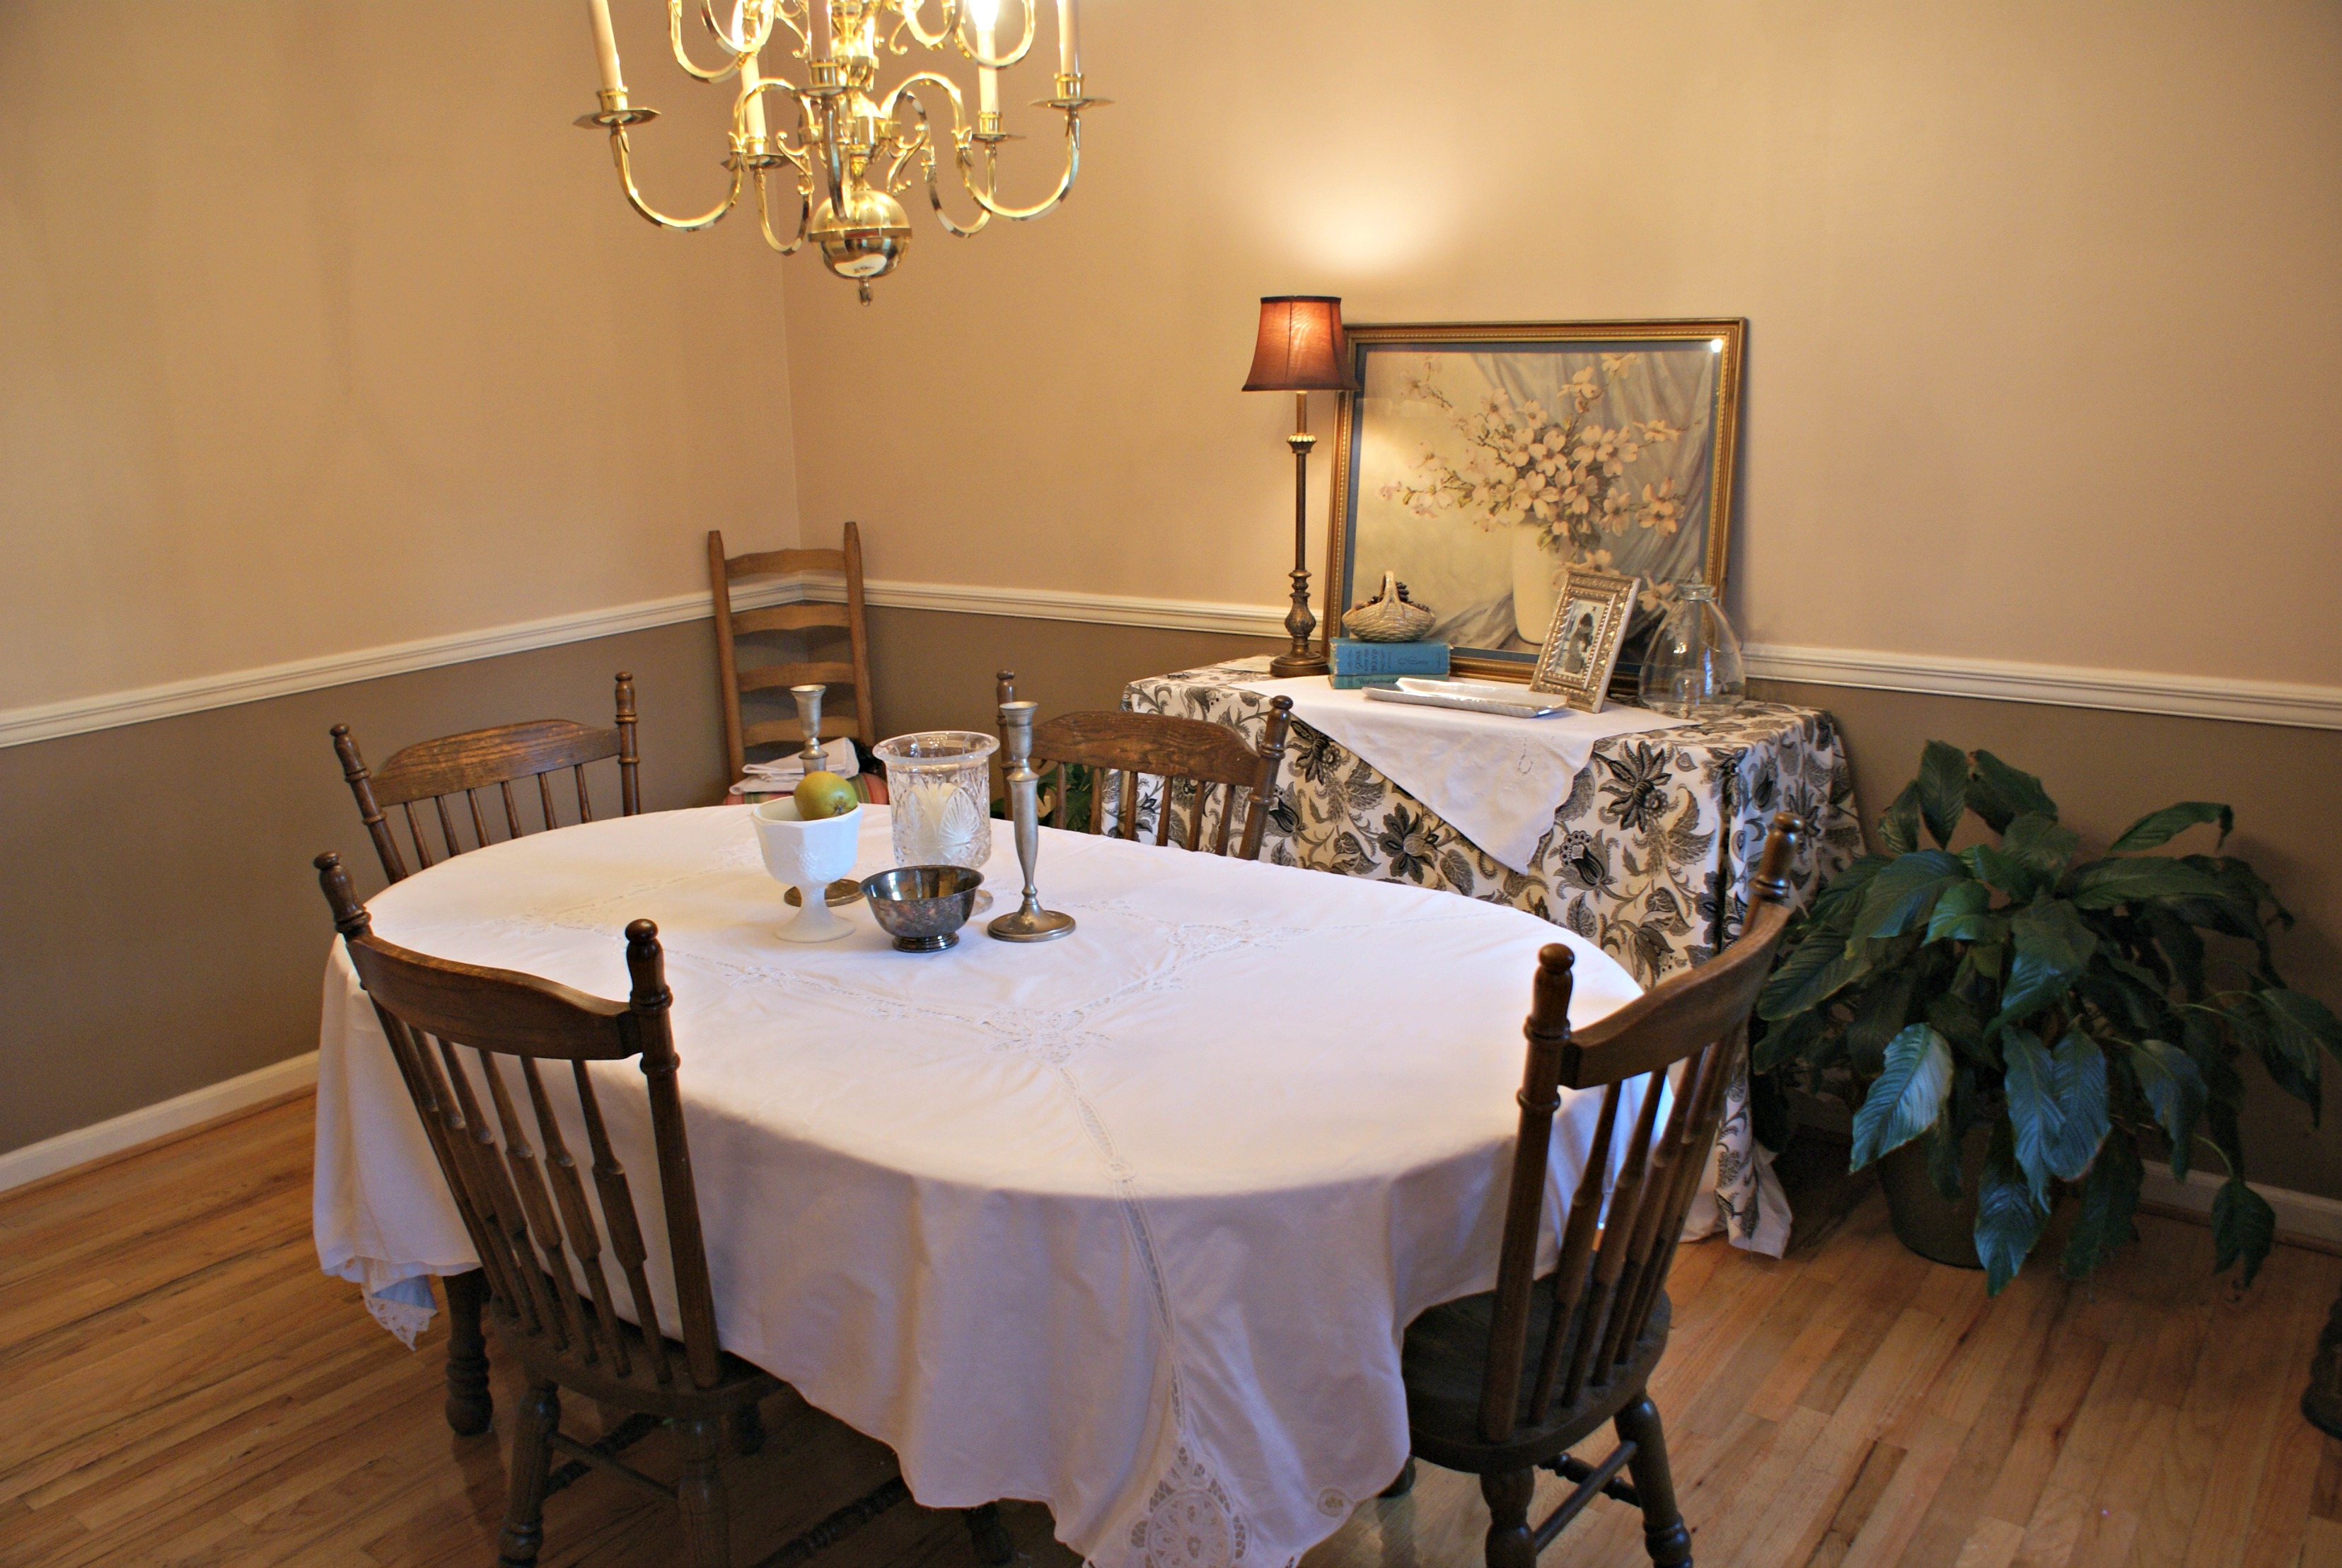 A Dining Room Makeover on a Bud